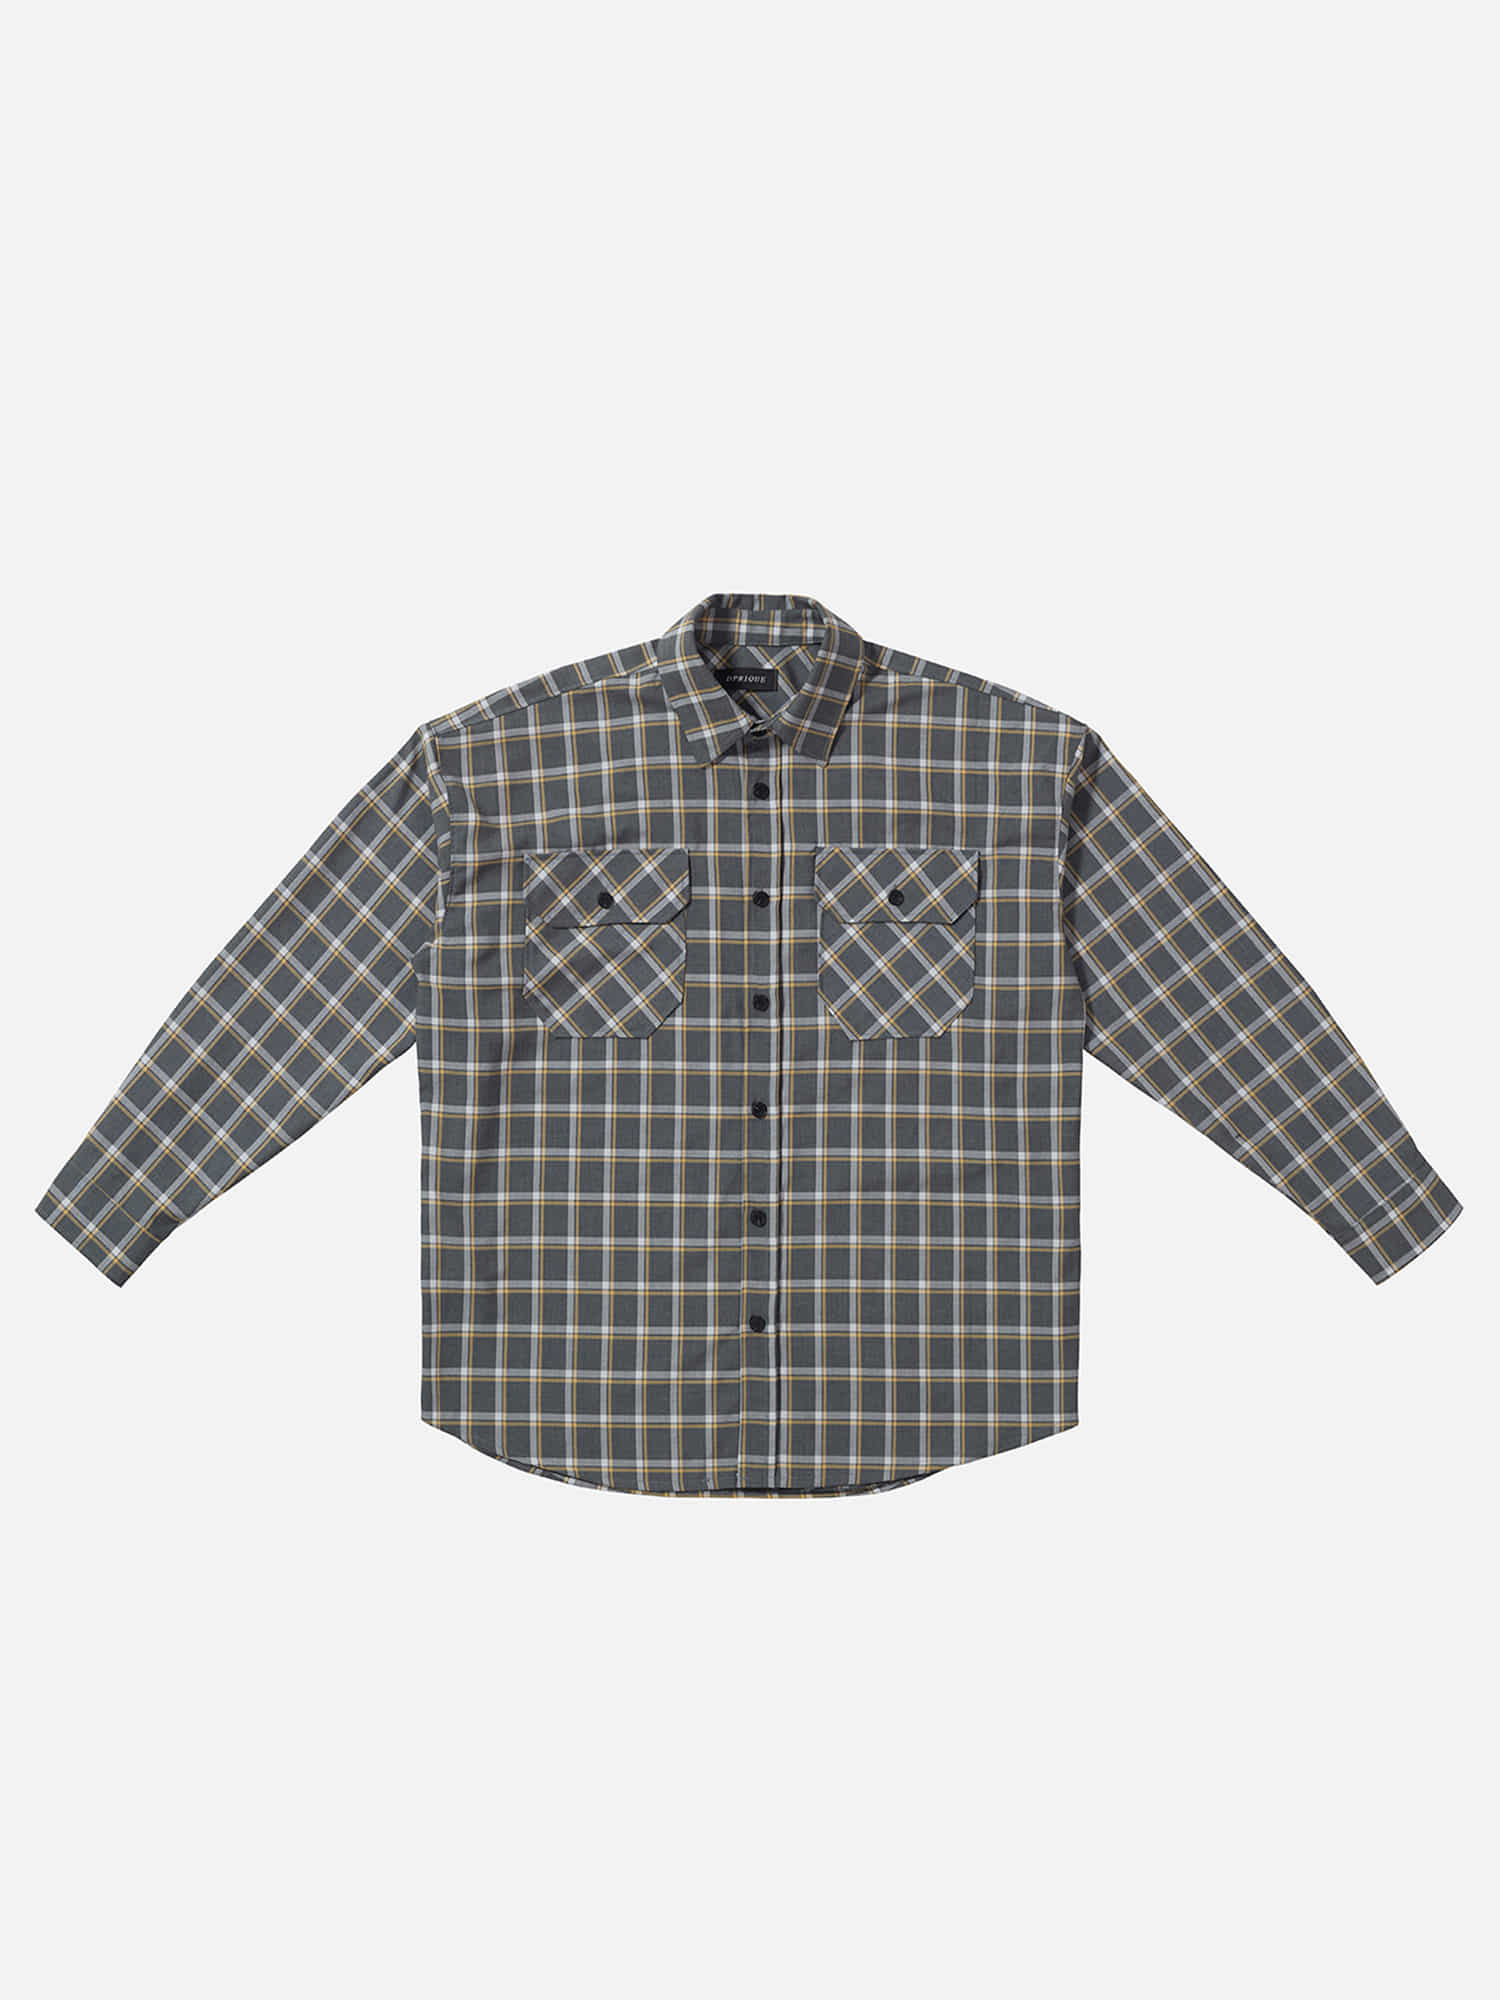 07 Oversized Check Shirt - Grey